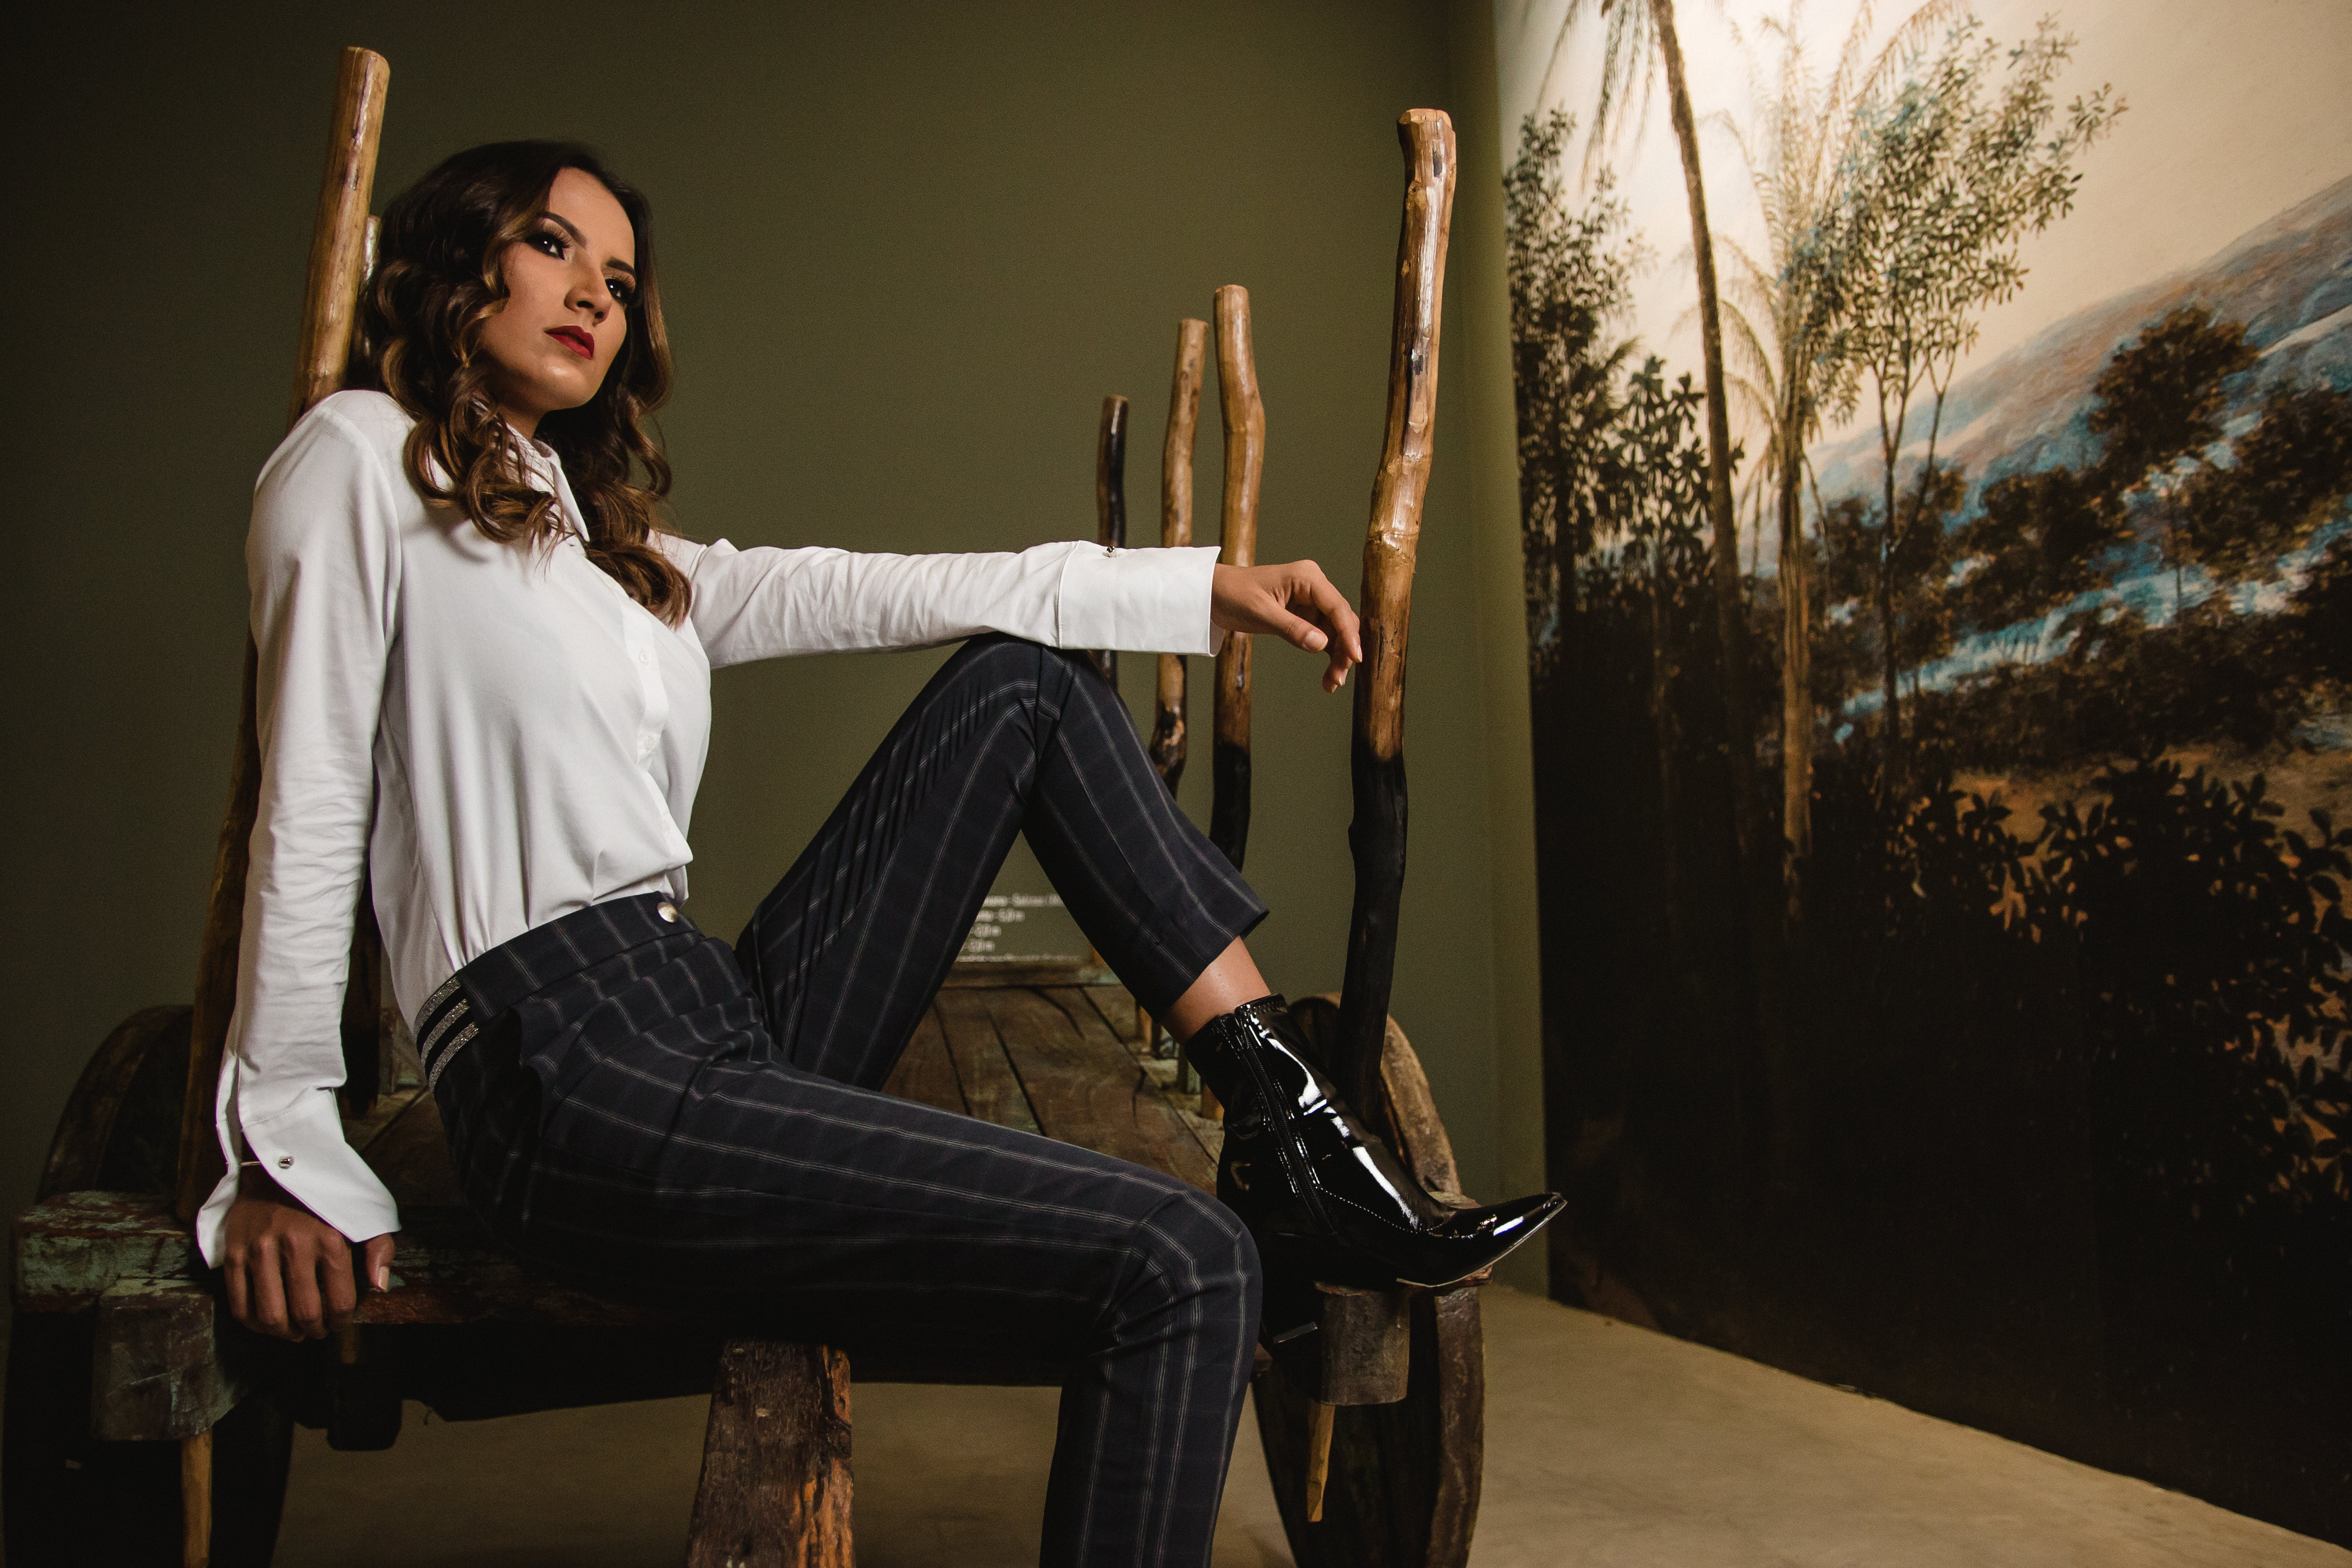 Photo of Woman Sitting on Wooden Chair